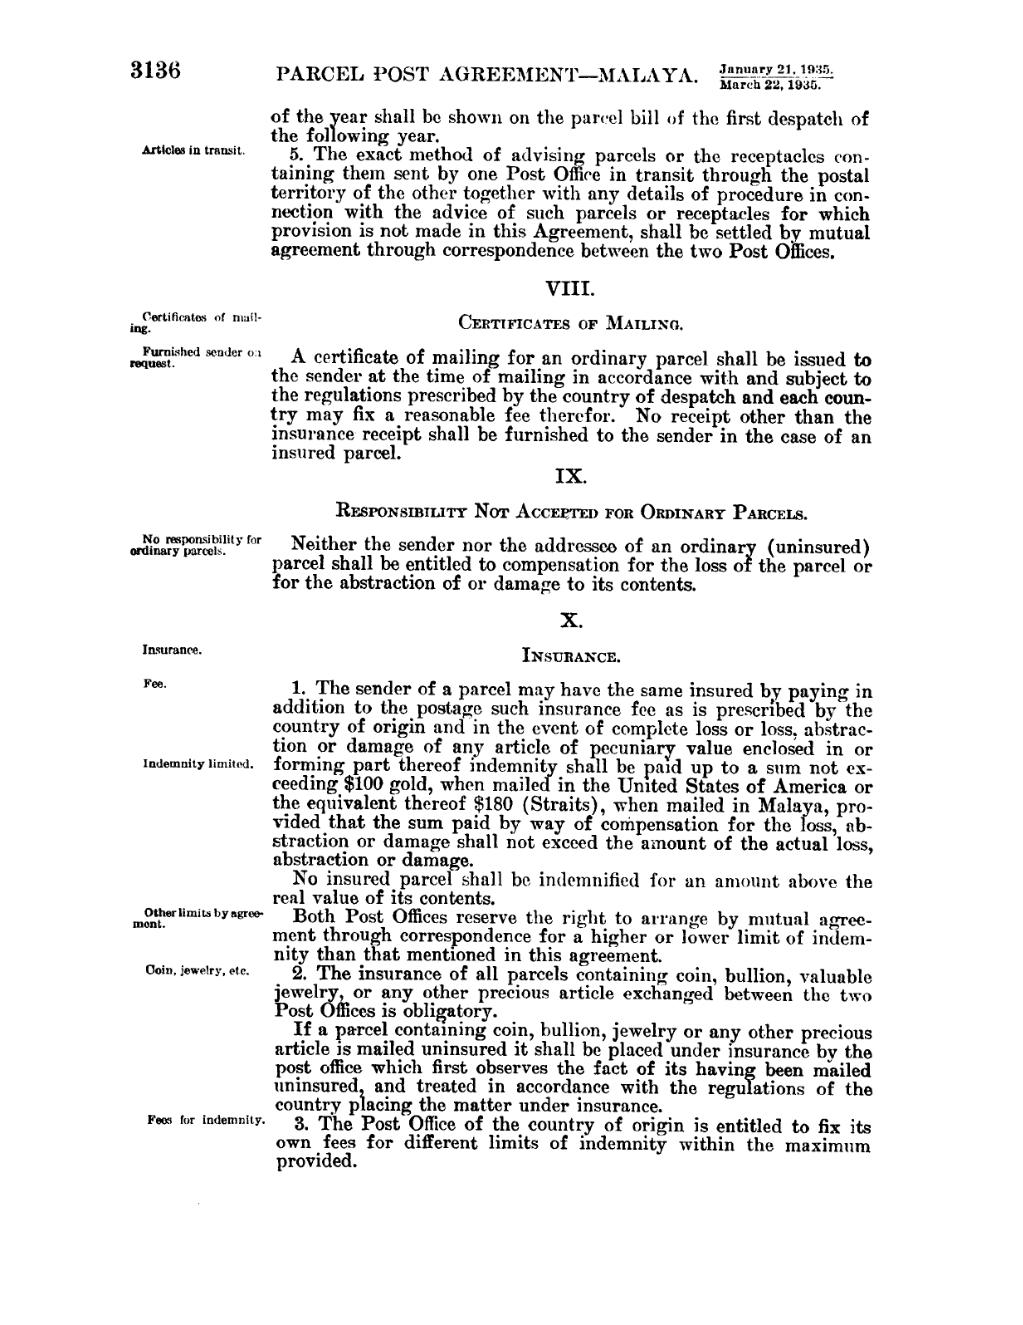 Pageunited states statutes at large volume 49 part 2vu1120 the post office of the country of origin is entitled to fix its own fees for different limits of indemnity within the maximum provided 1betcityfo Image collections